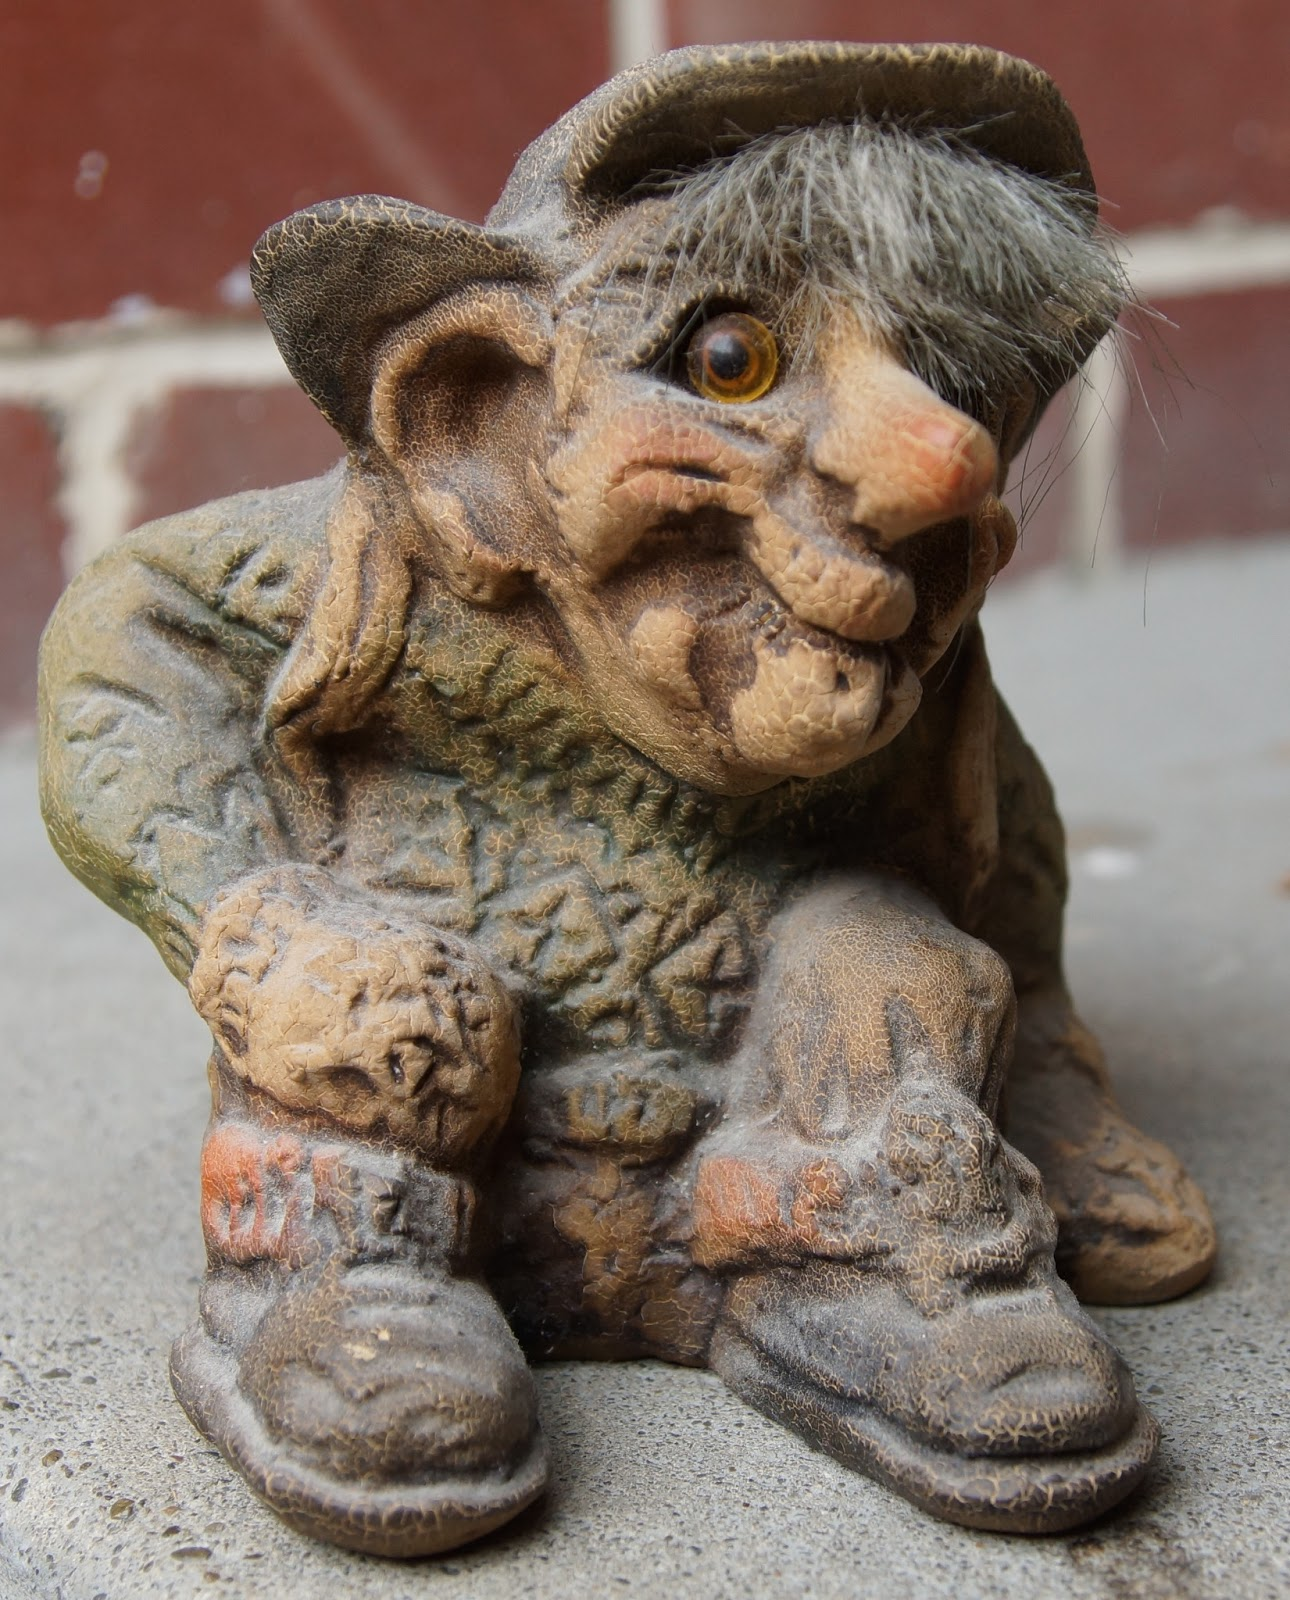 A dusty old troll